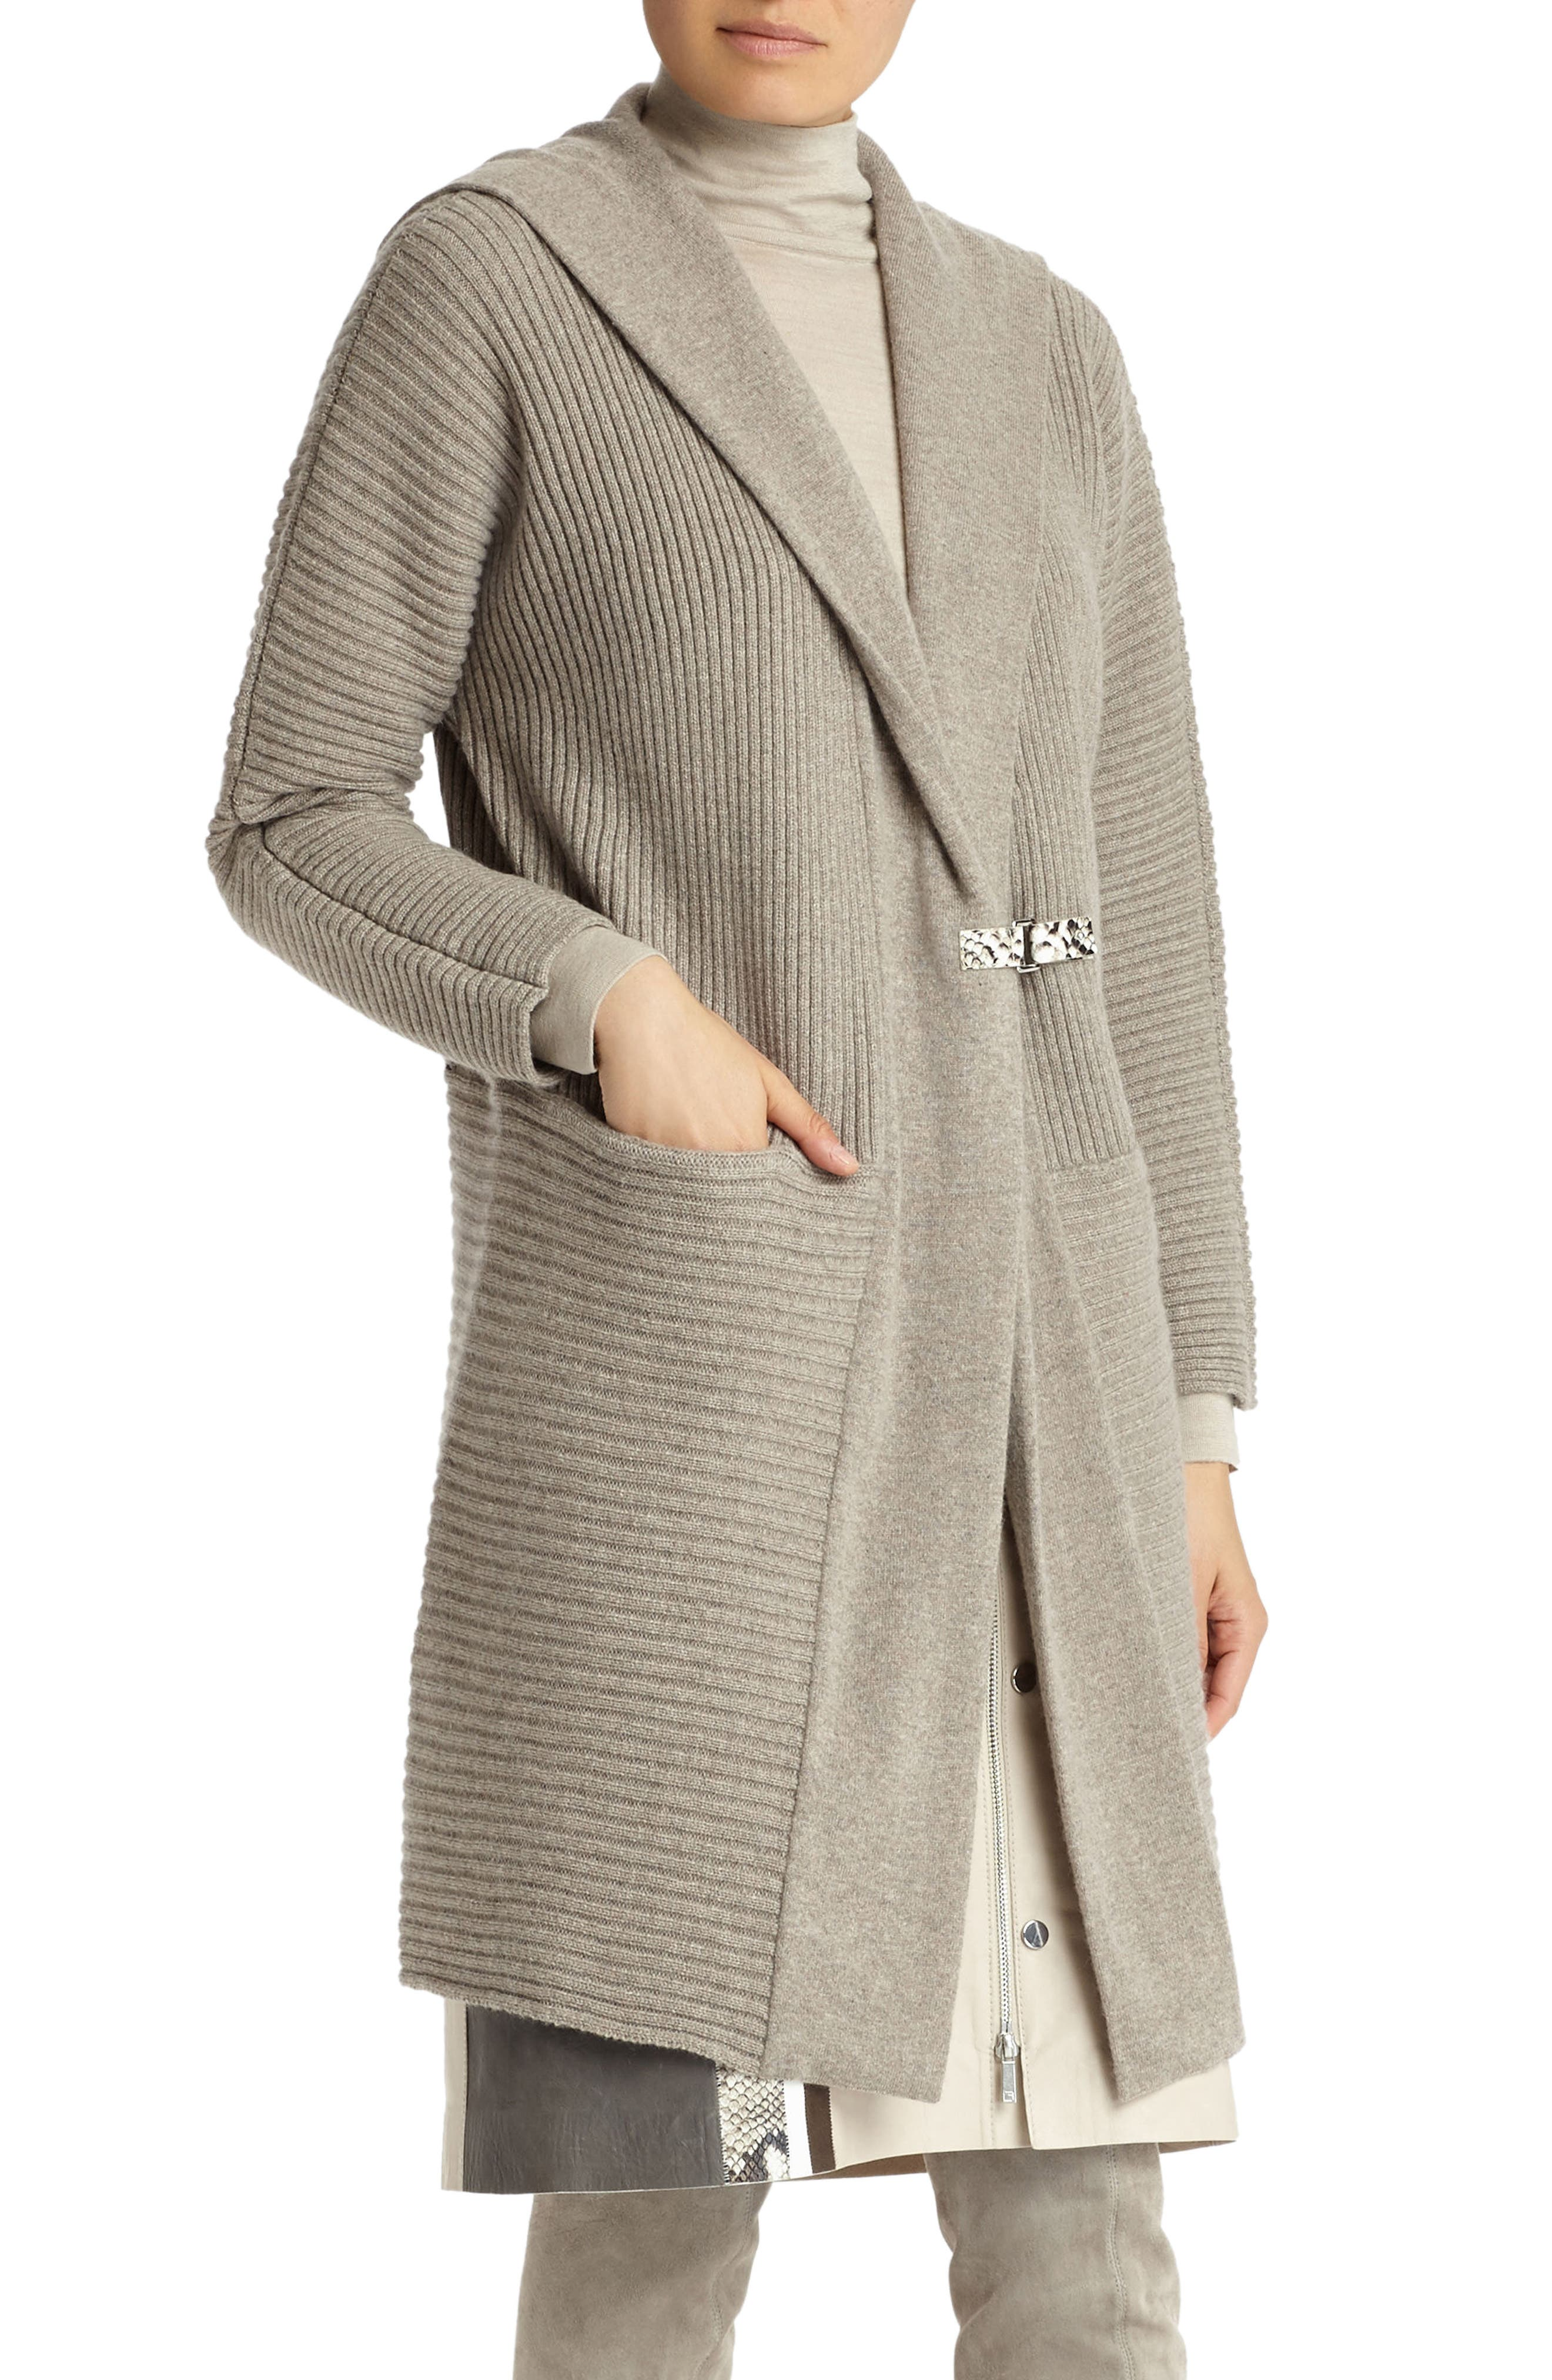 Lafayette 148 New York Mixed Rib Cashmere Hooded Cardigan